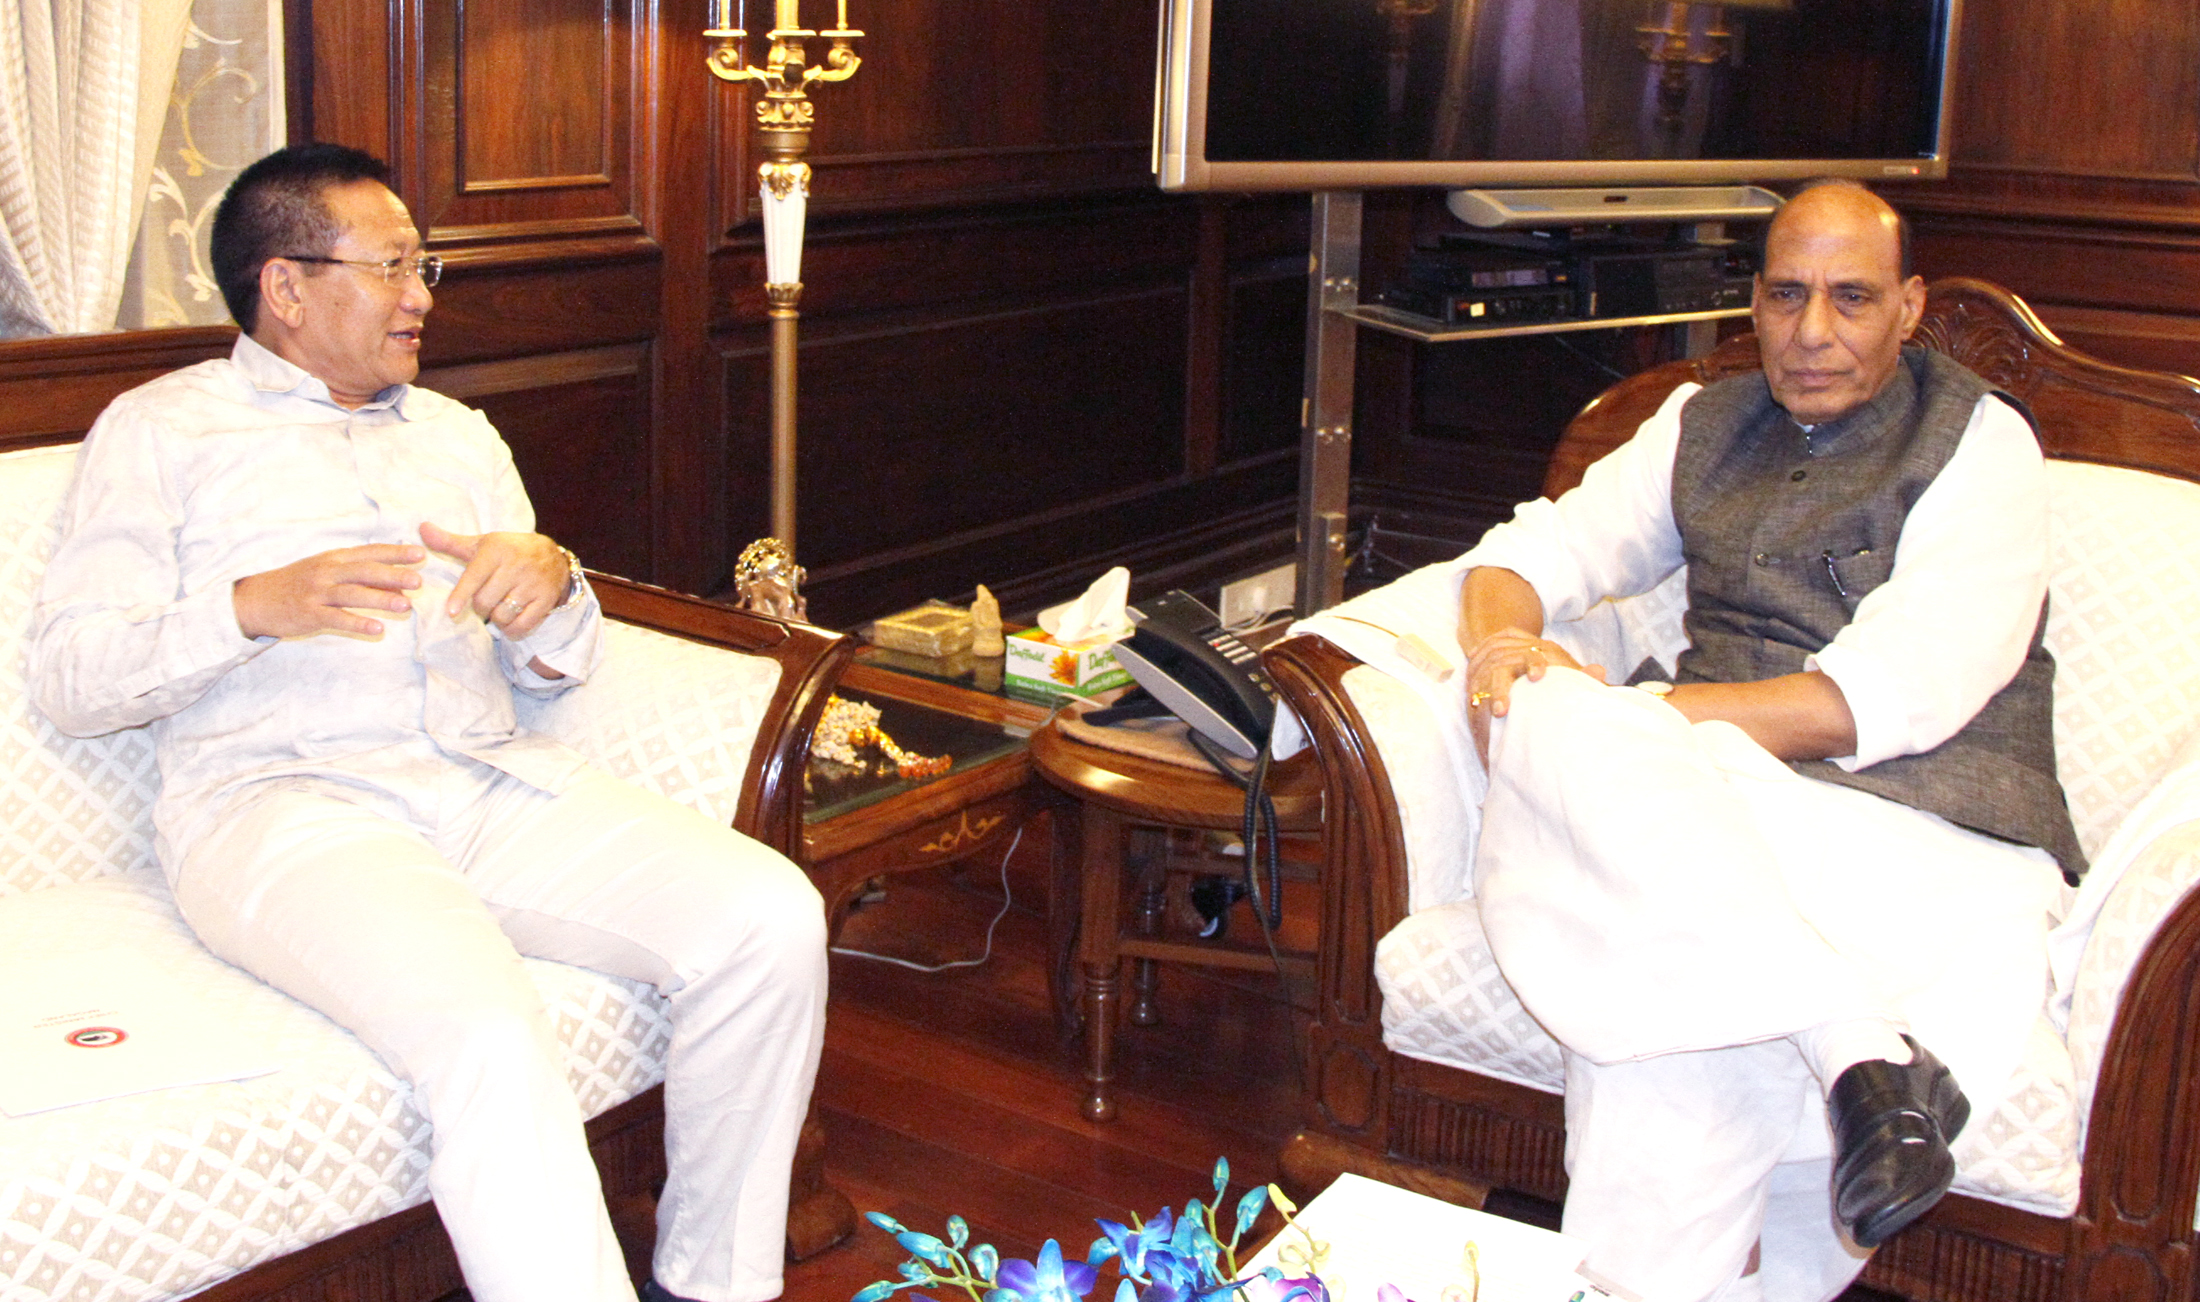 The Chief Minister of Nagaland, Shri T.R. Zeliang calling on the Union Home Minister, Shri Rajnath Singh, in New Delhi on July 29, 2015.